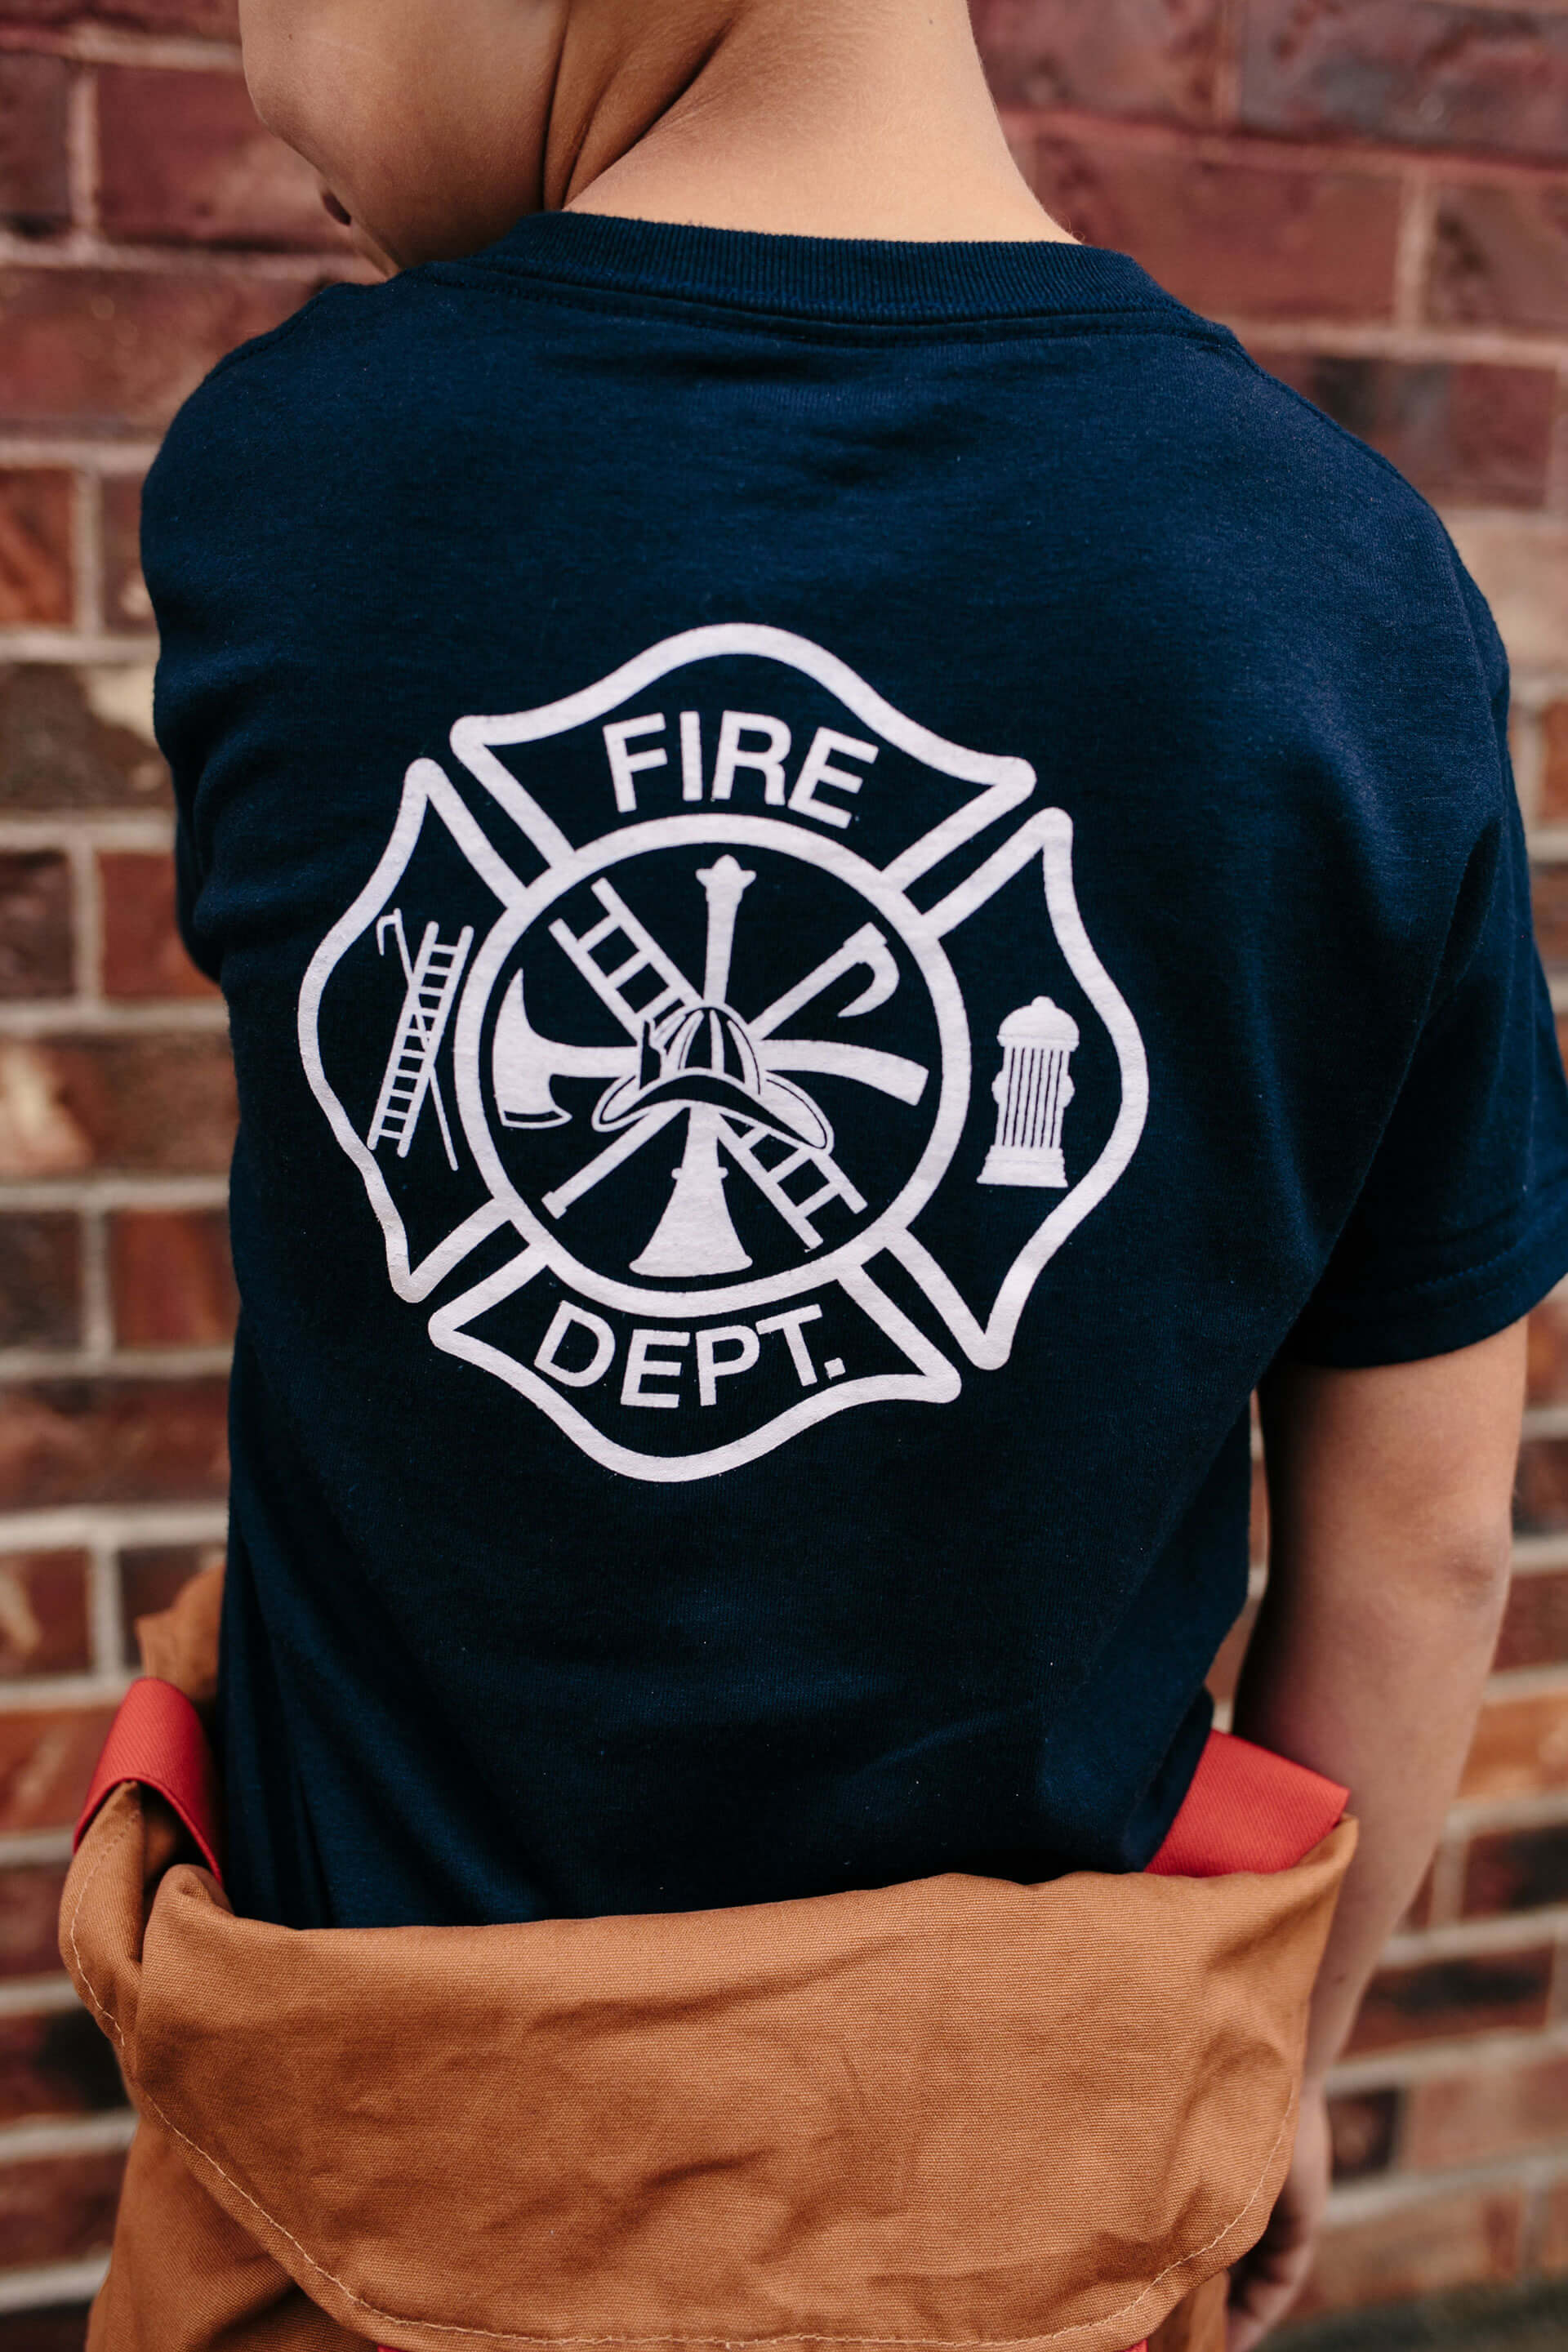 de2c55a1f Black, Navy, or Red with fire service Maltese cross screen-printed on the  back and Little Hero badge on the front left chest. S, M, L. 5.6-ounce, ...